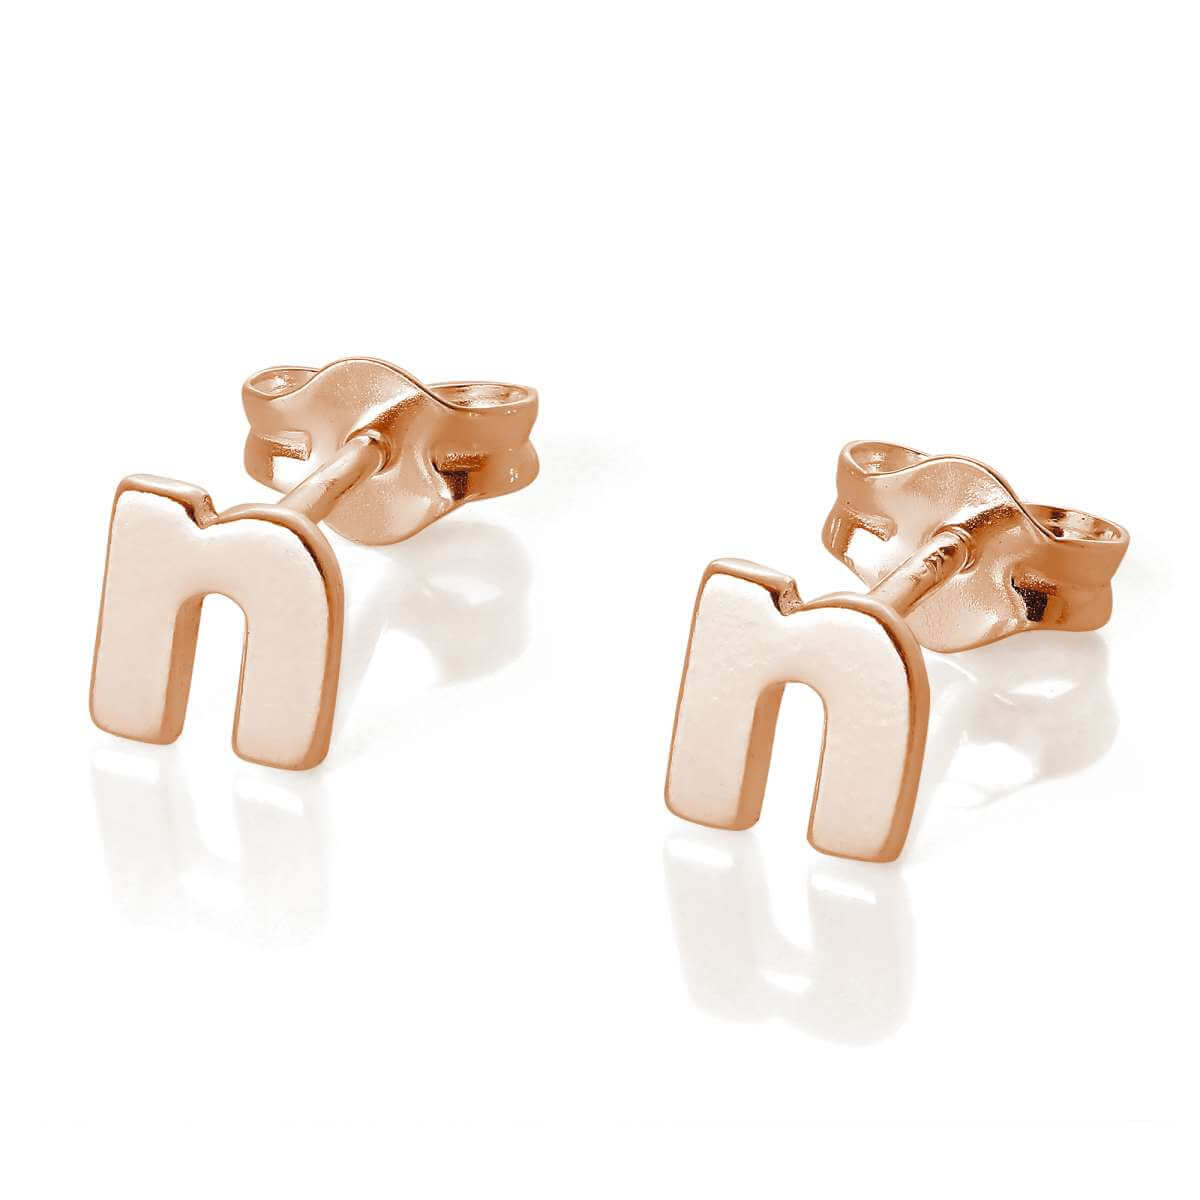 Rose Gold Plated Sterling Silver Letter N Stud Earrings